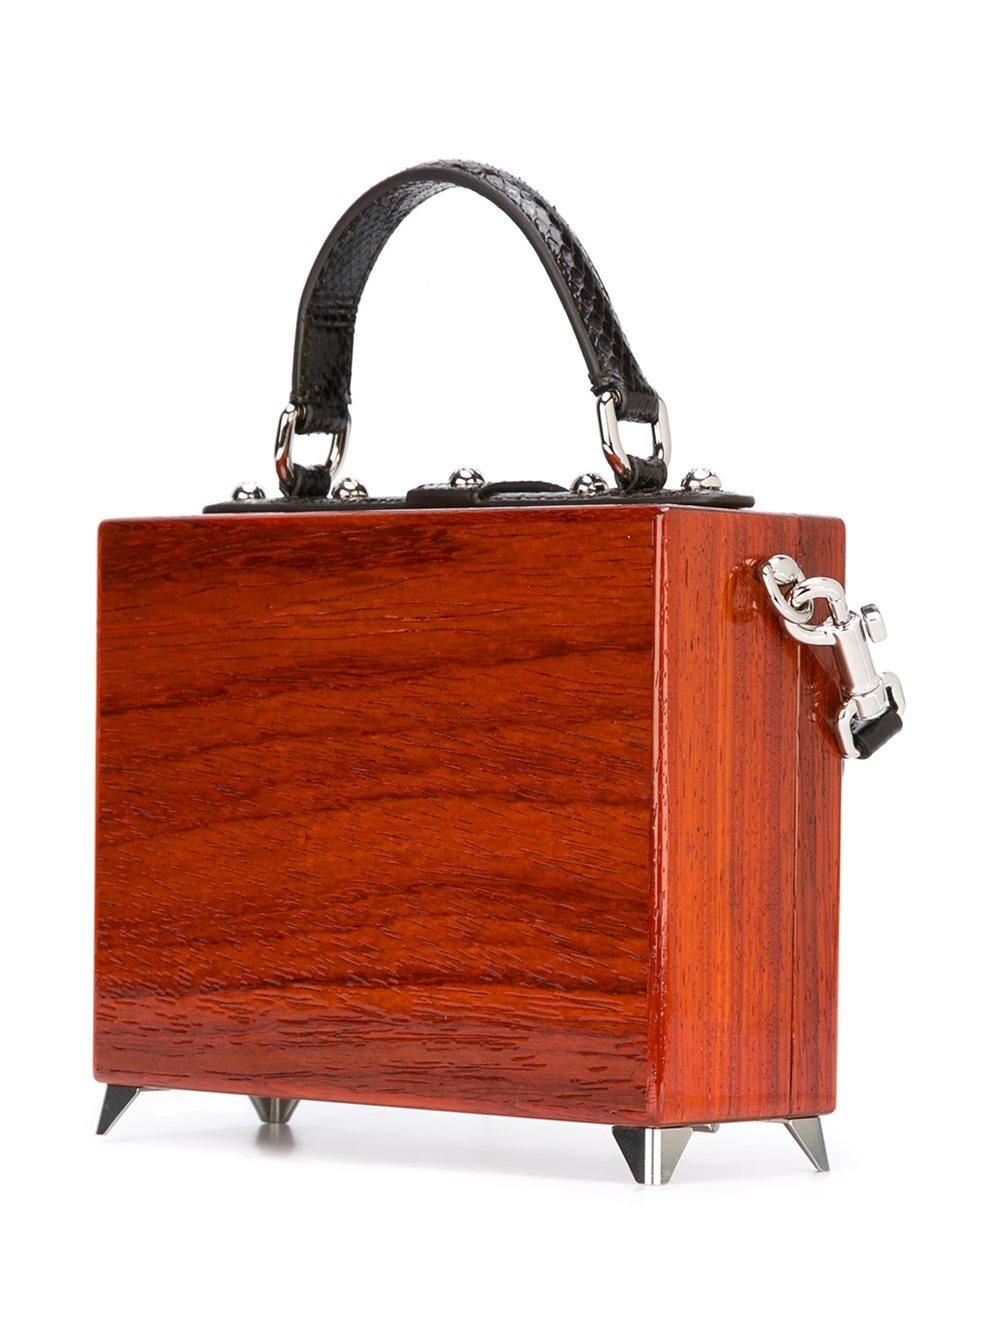 Dolce & Gabbana Leather Tv 'dolce' Box Tote in Brown